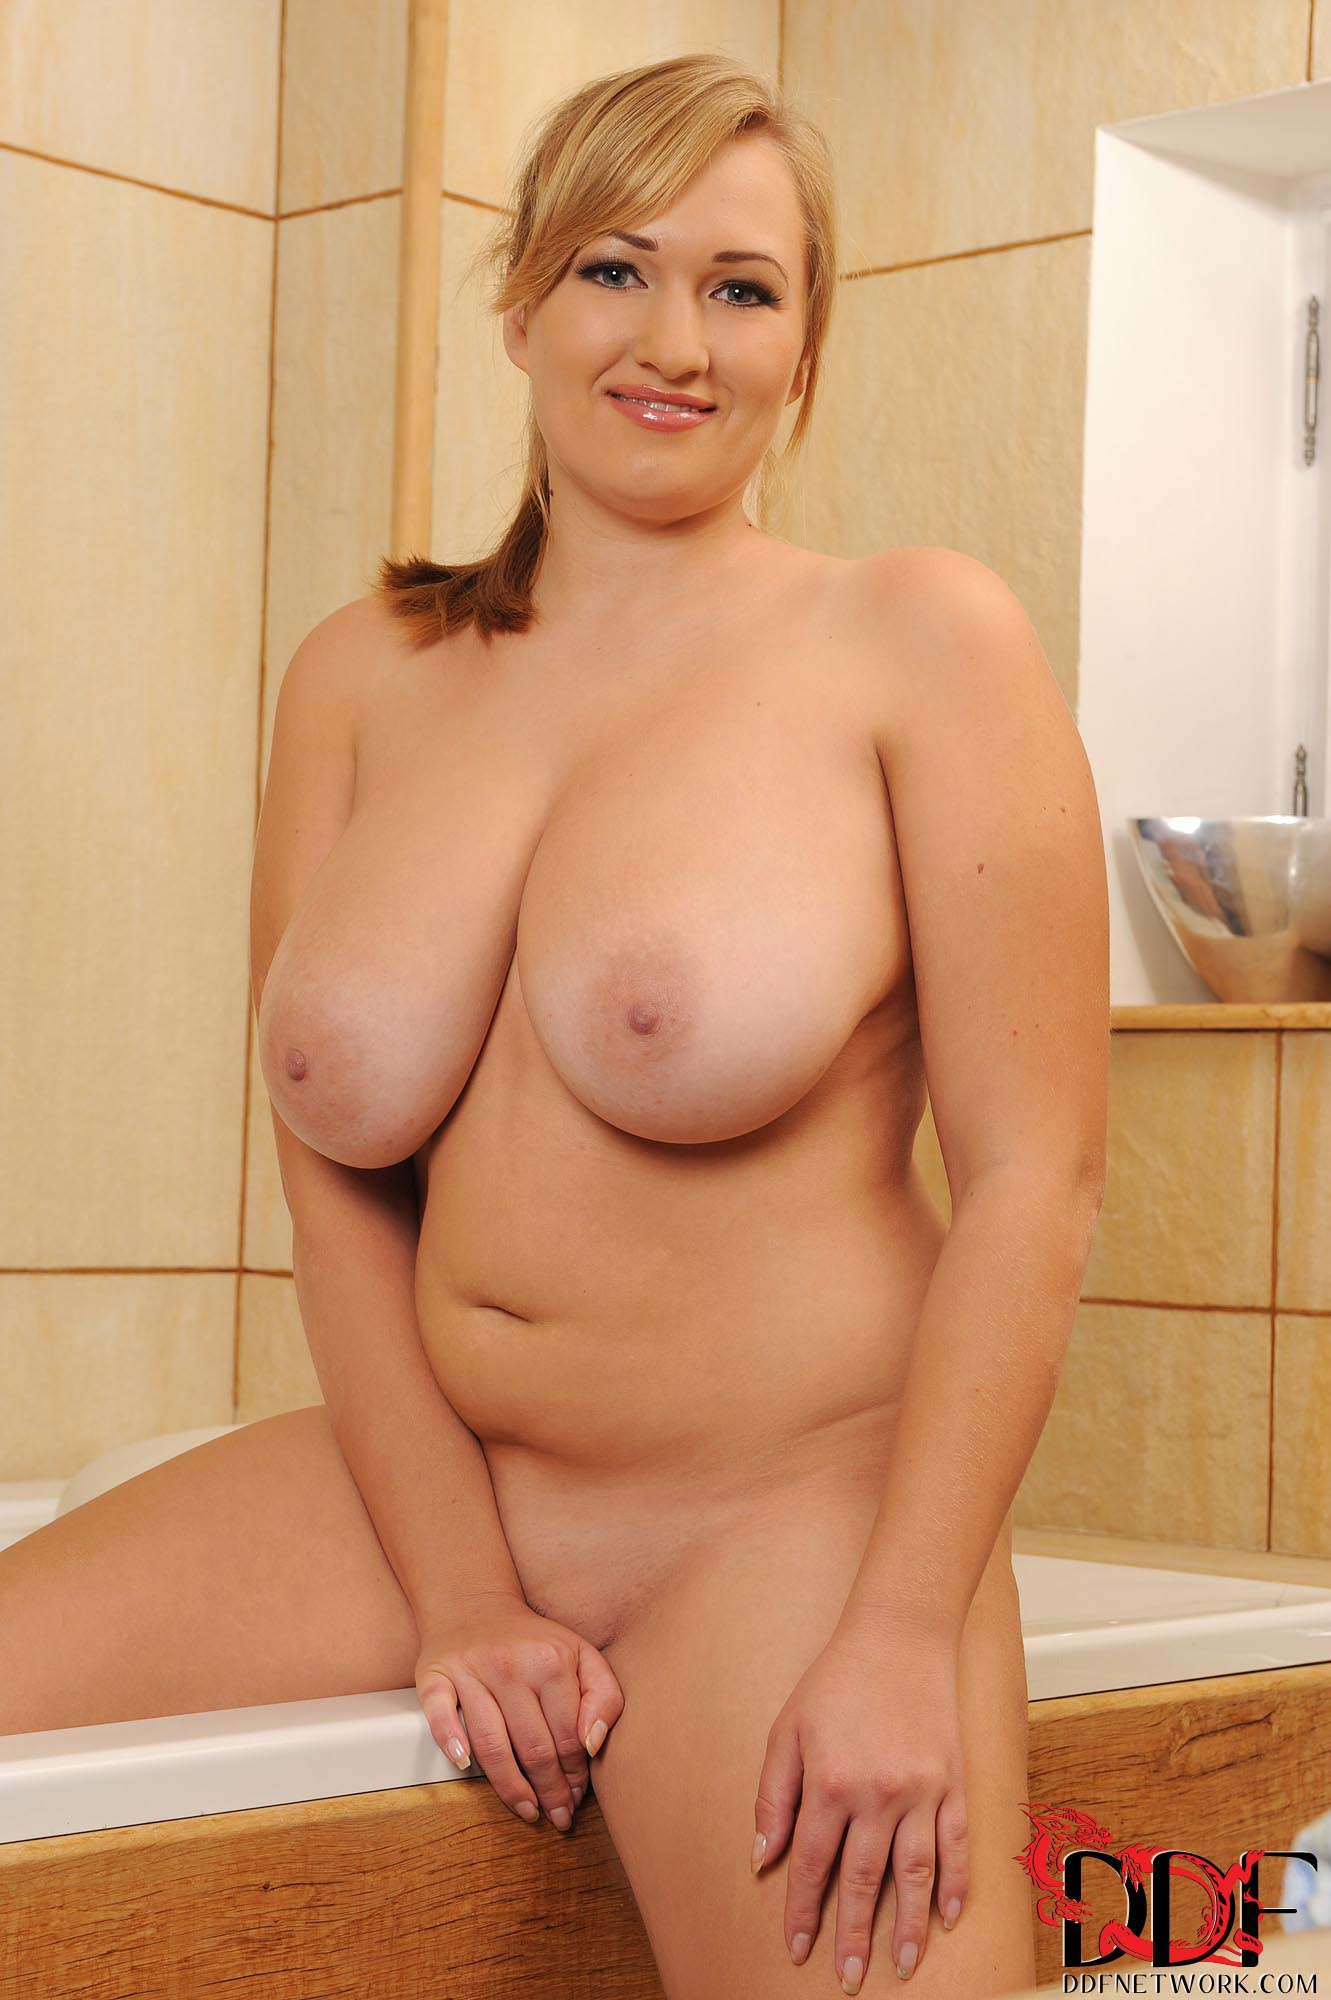 Leanne crow oils her sexy boobs on webcam 2